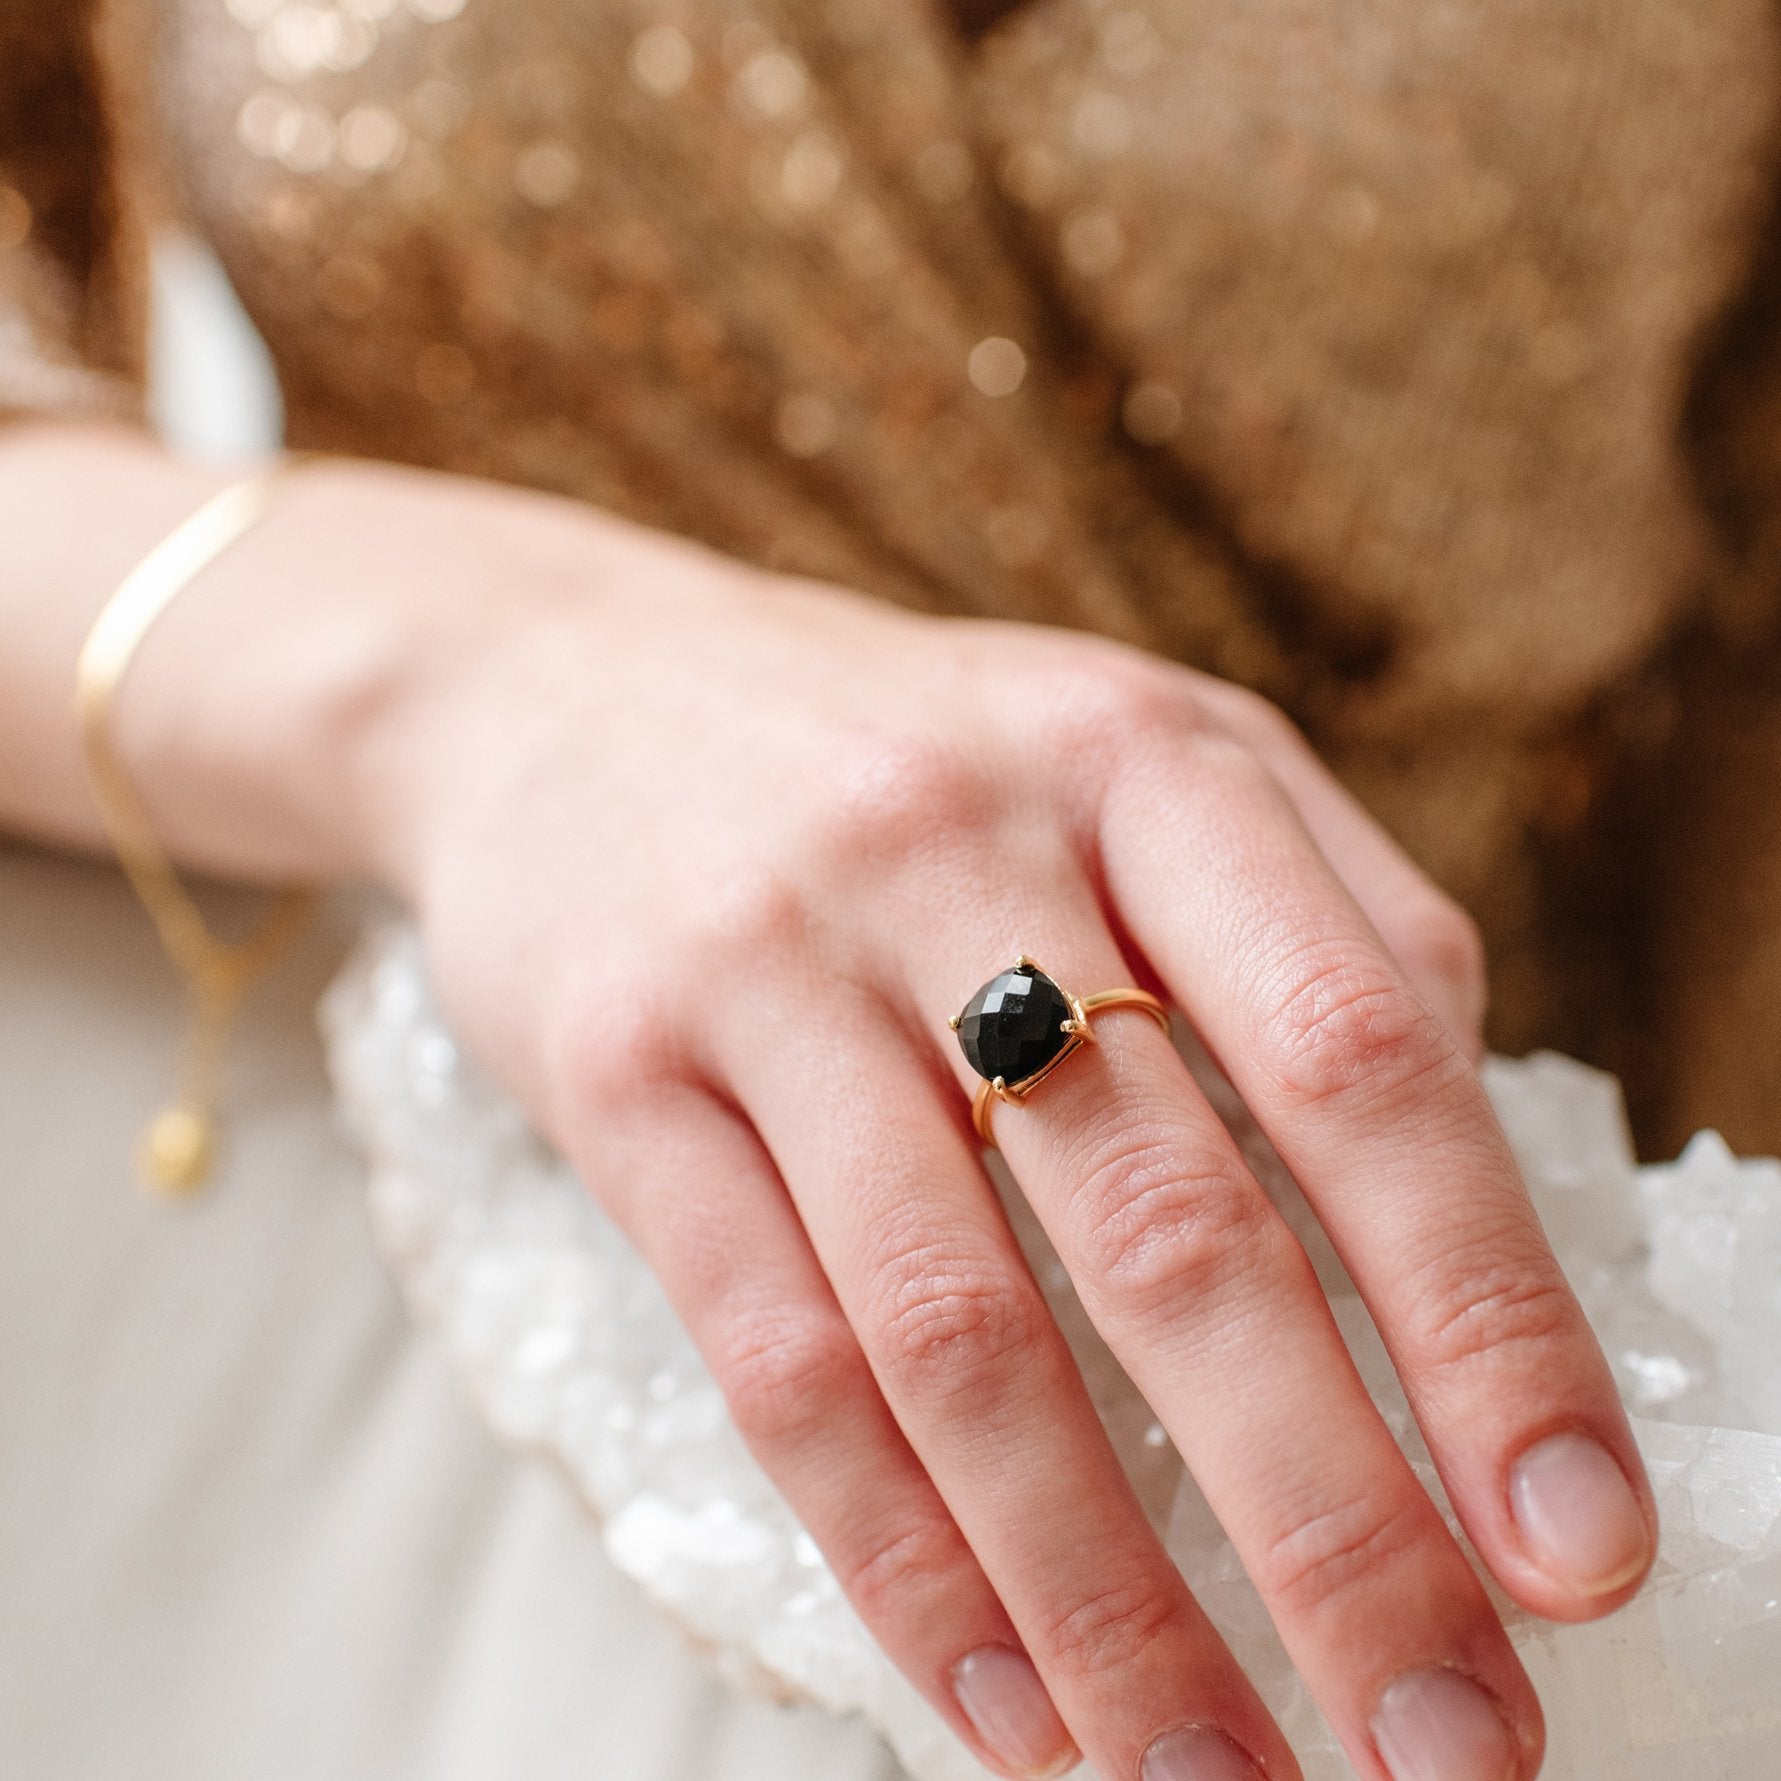 DAY 9 - GLEE RING - BLACK ONYX & GOLD - SO PRETTY CARA COTTER